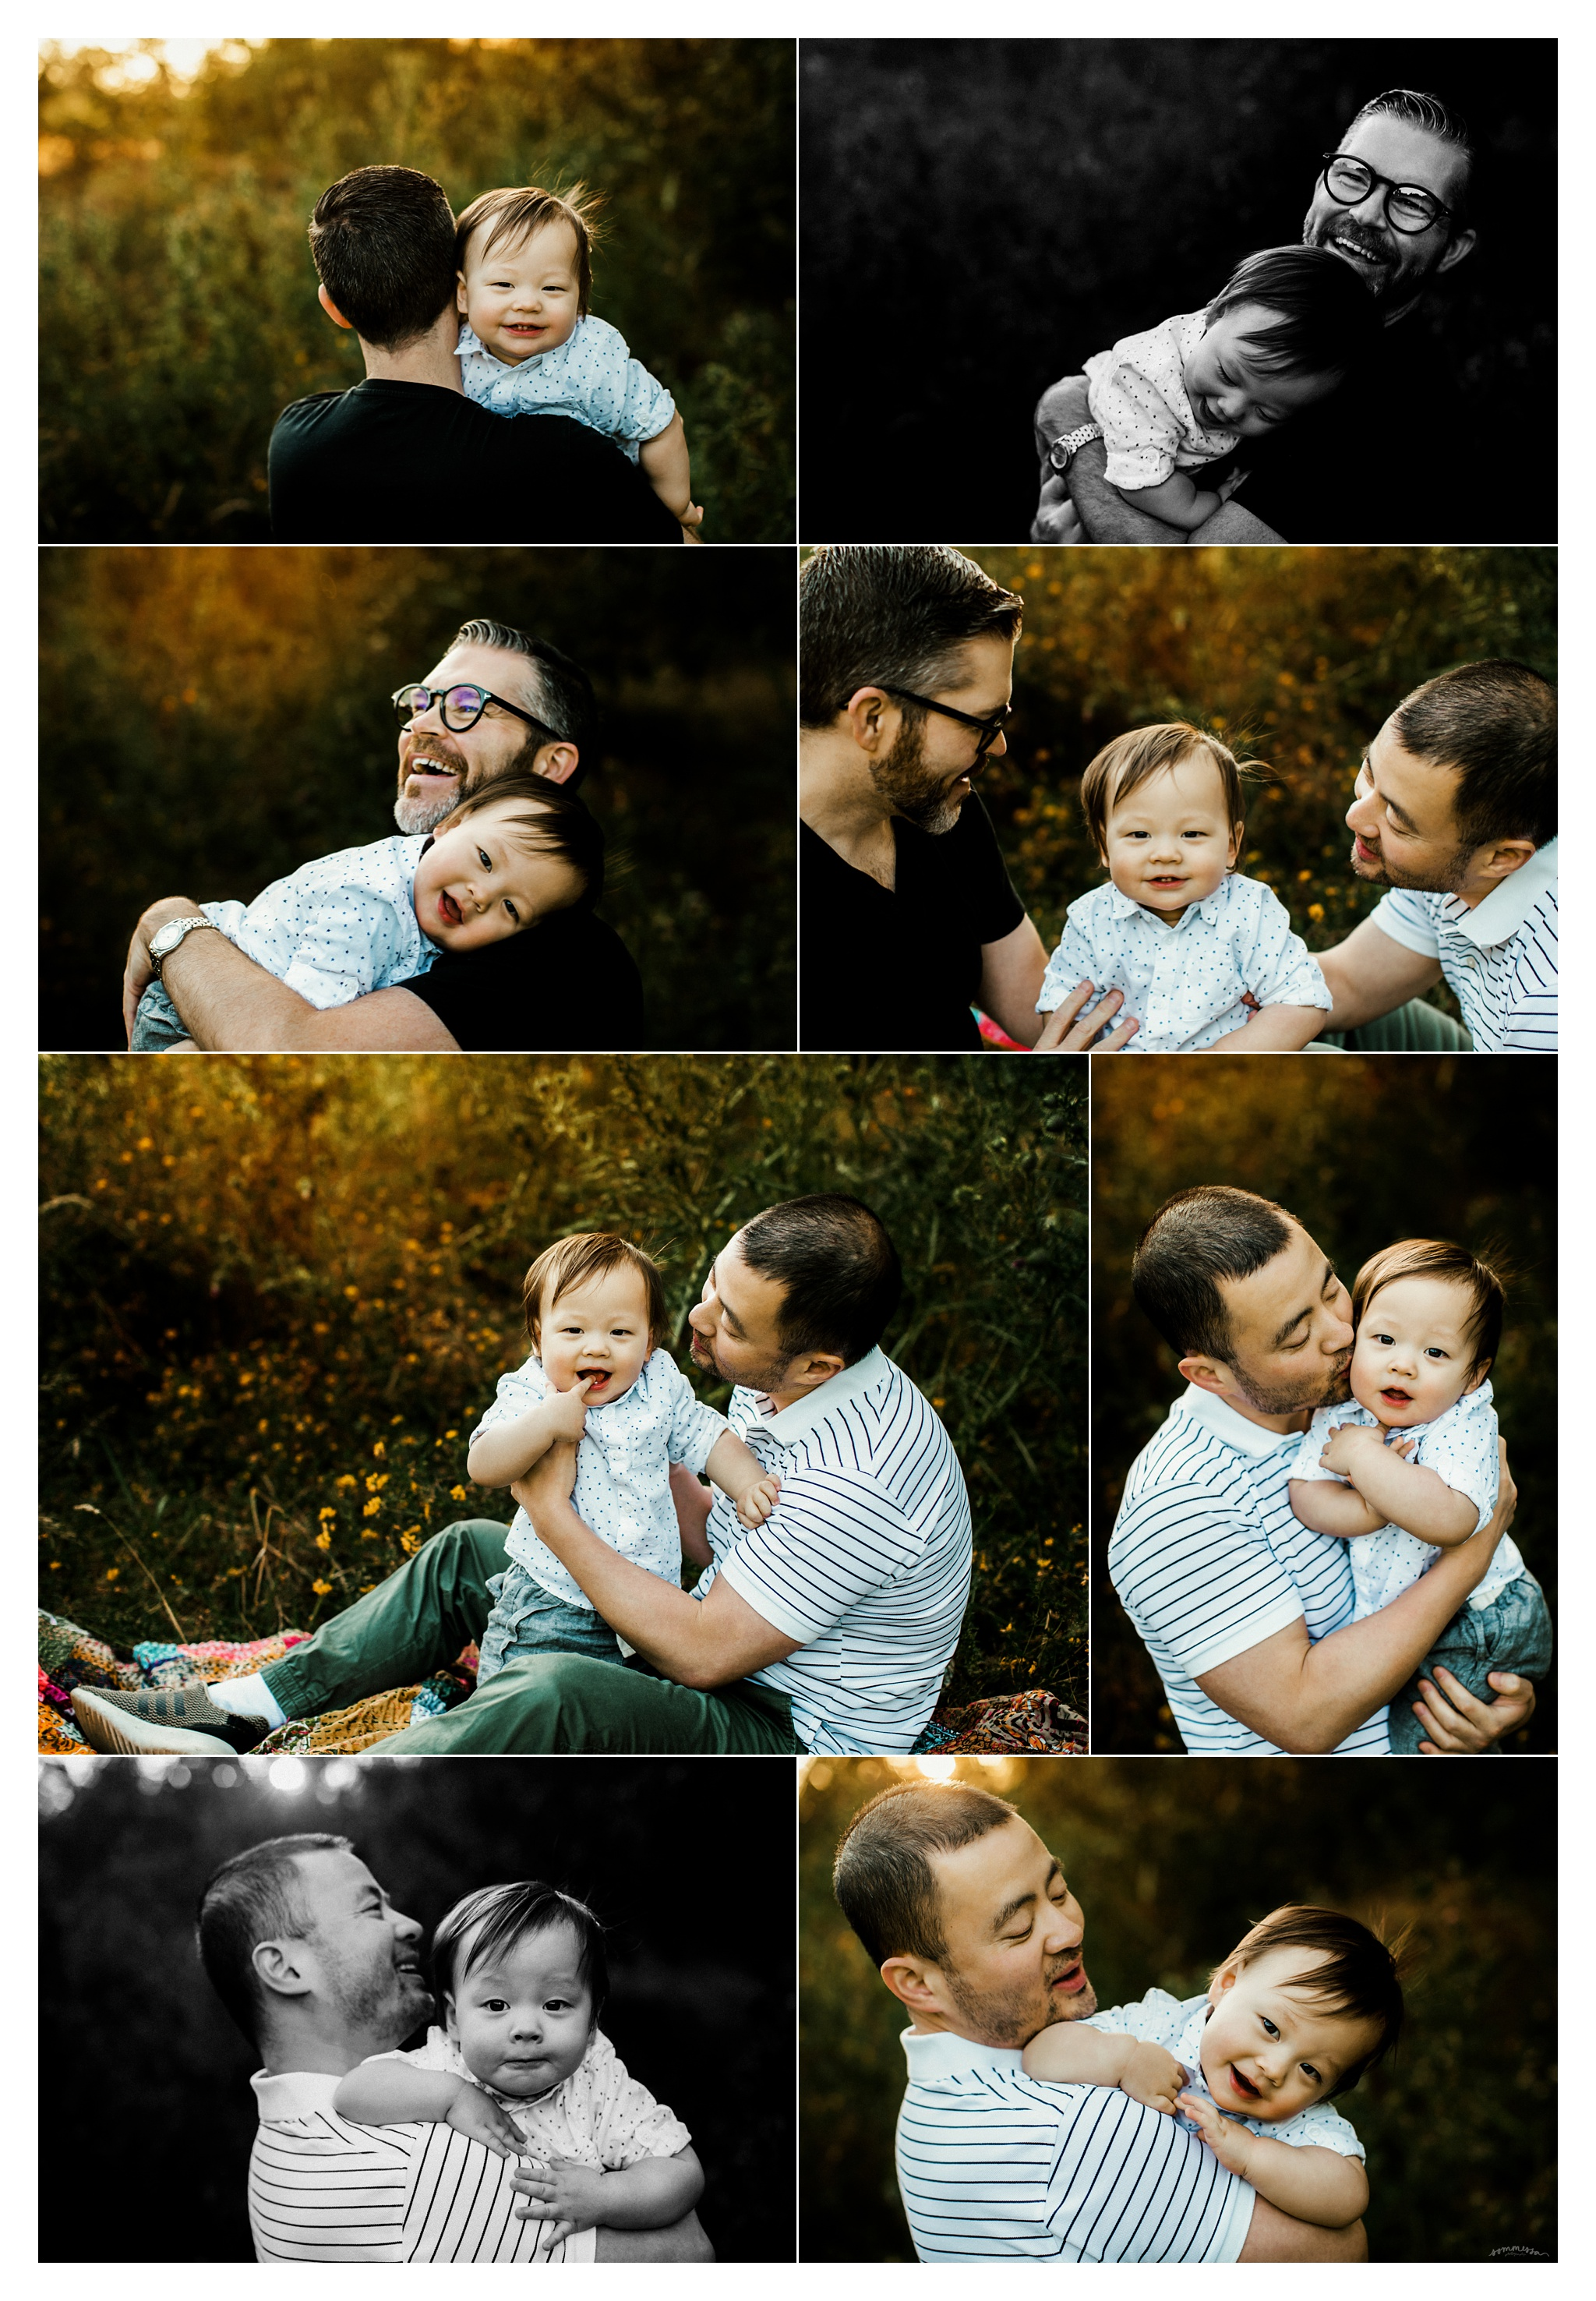 LGBTQ Family Photography Portland, Oregon_3283.jpg